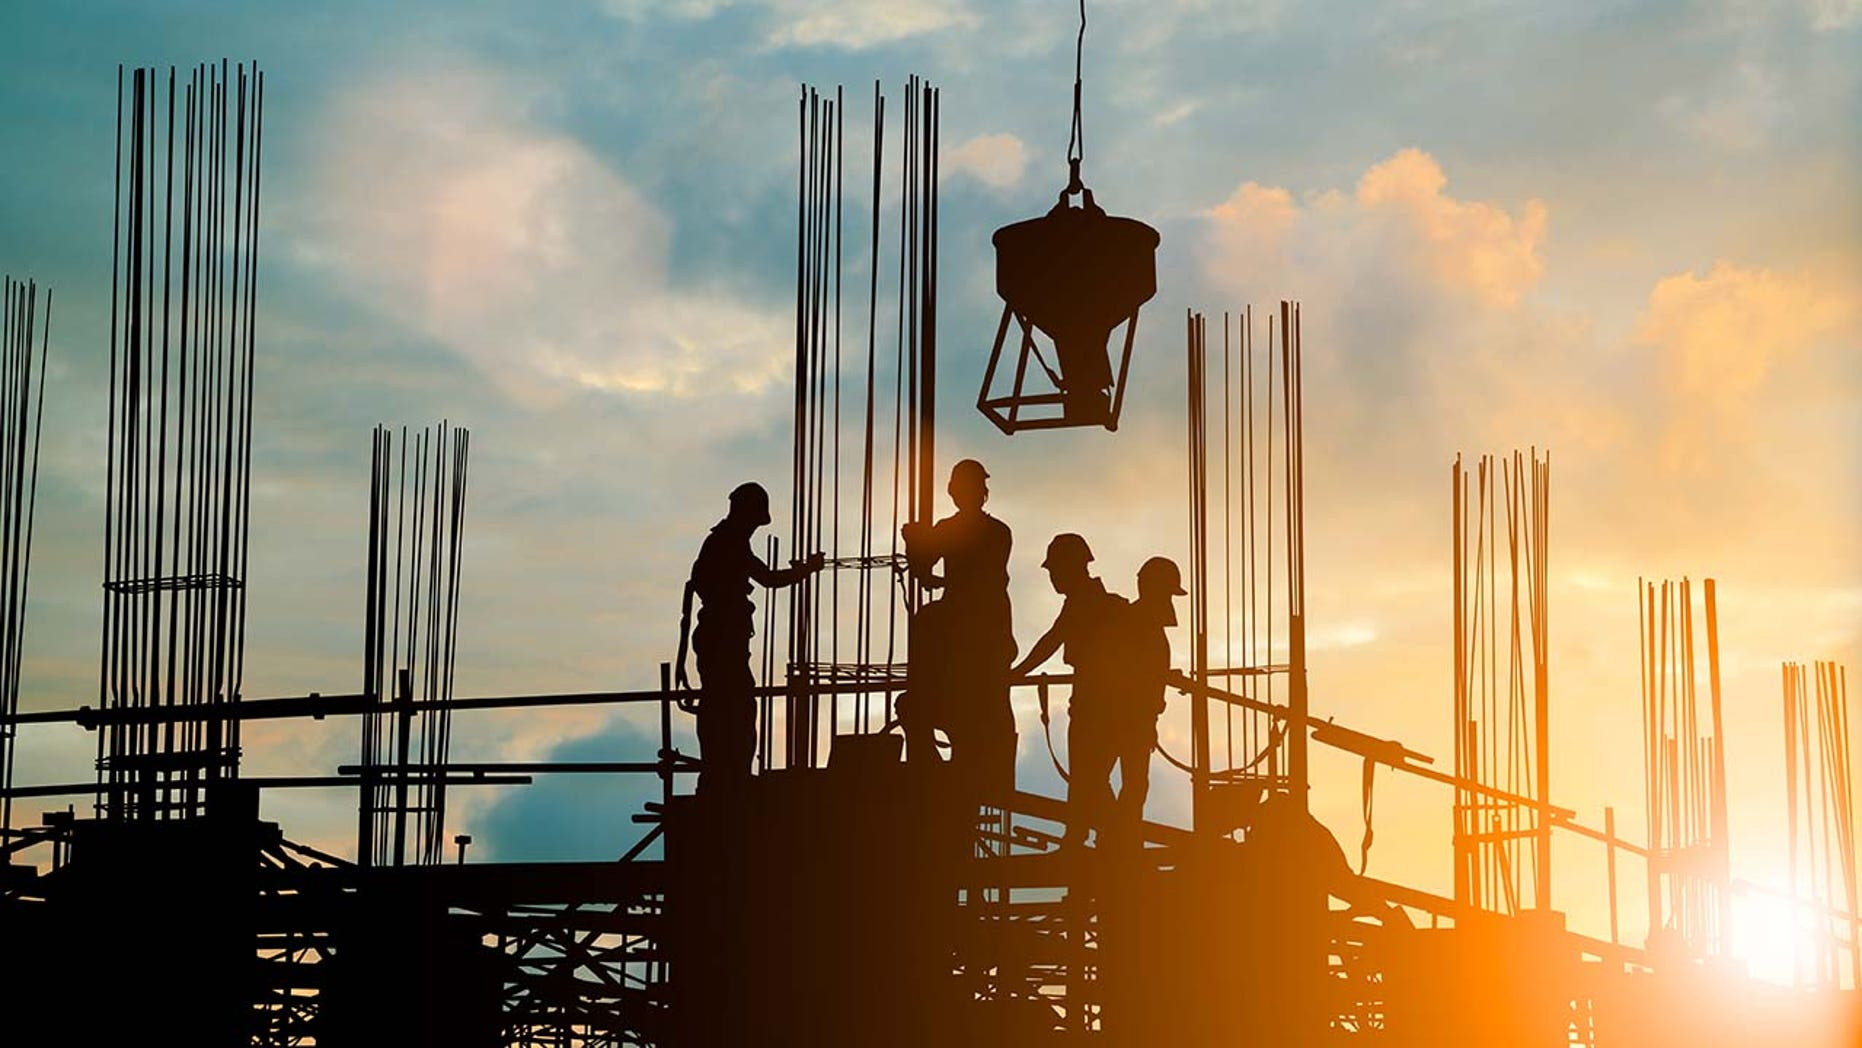 Men who work in construction have the highest rates of suicide in the country, according to a recent analysis by the Center for Disease Control and Prevention (CDC).